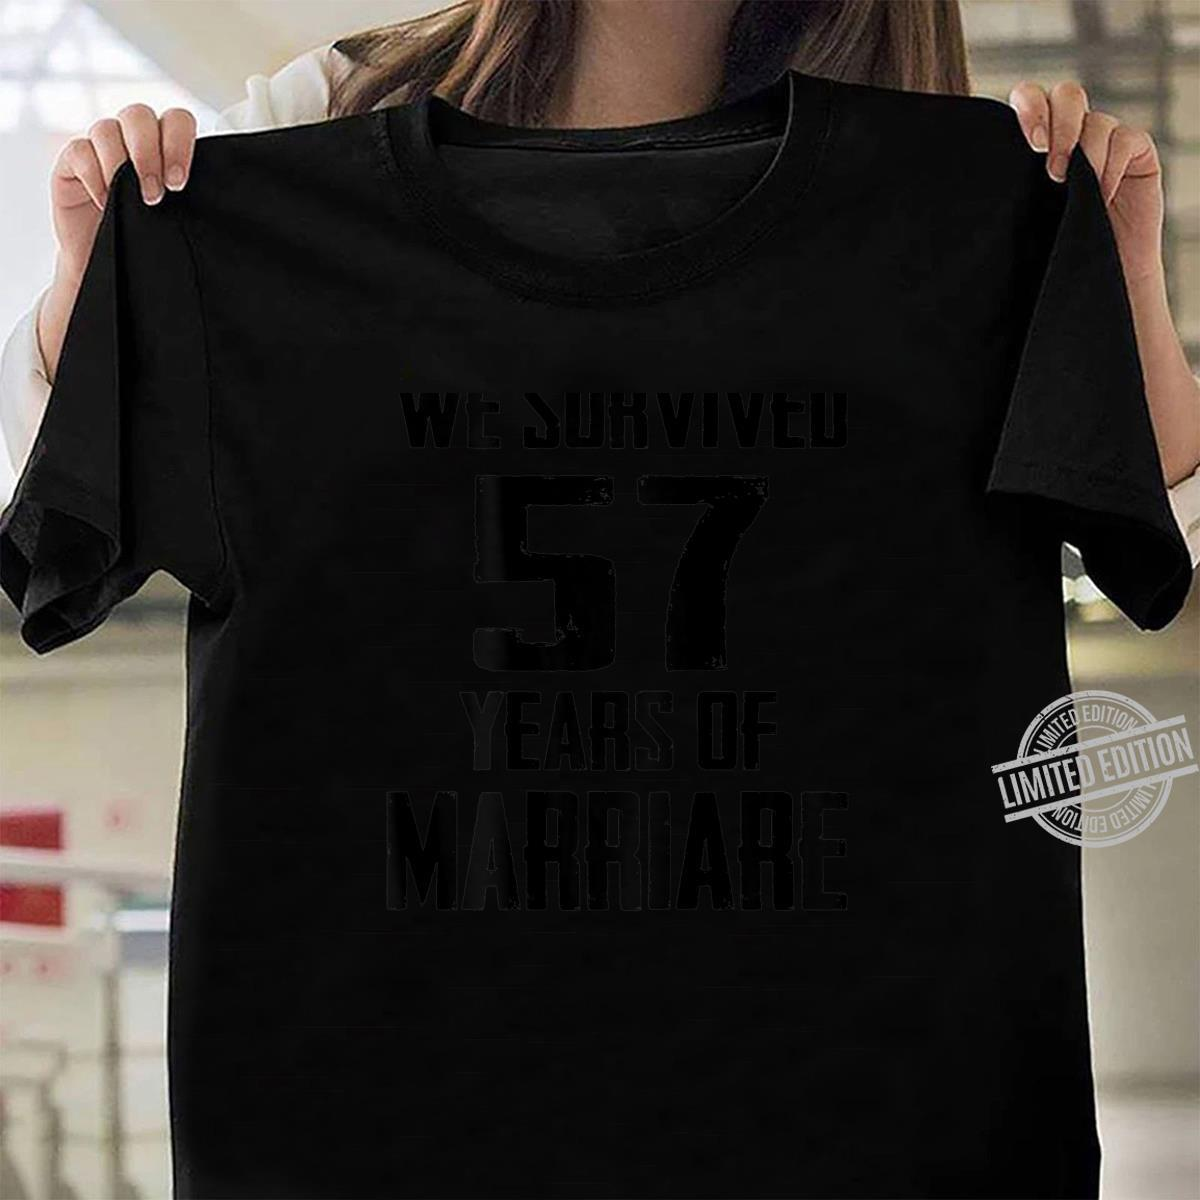 57th Wedding Anniversary Couples For Wife Husband Shirt ladies tee